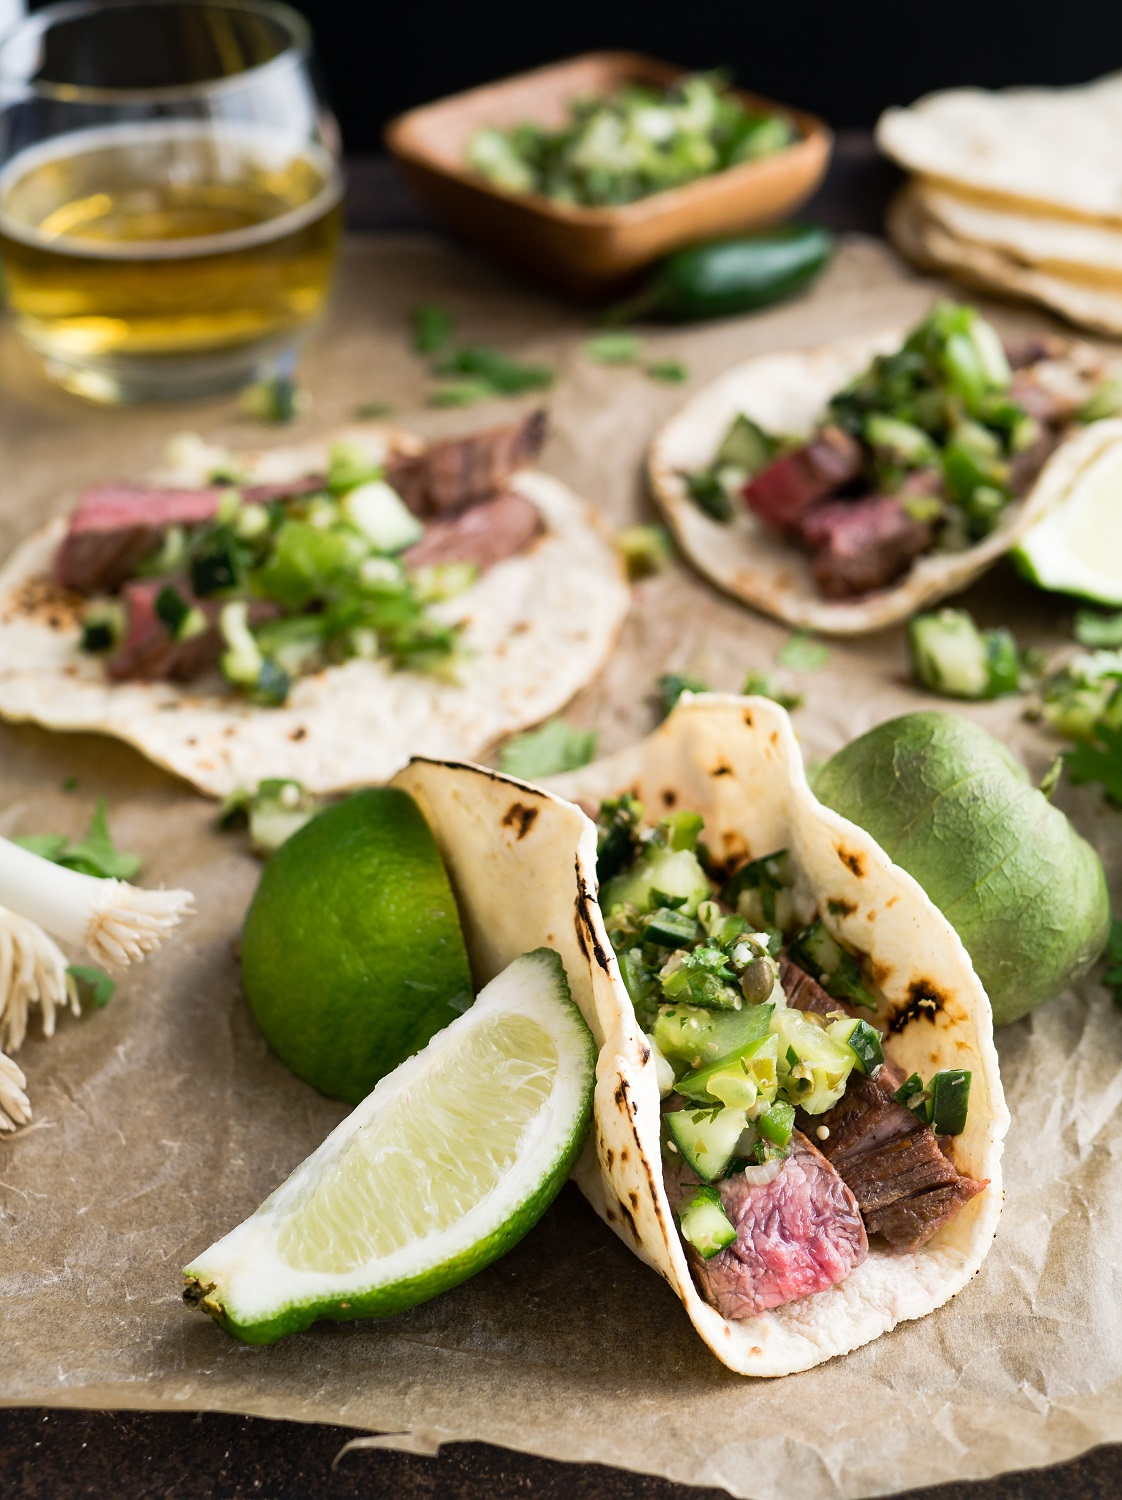 Mexican street food in Chichester